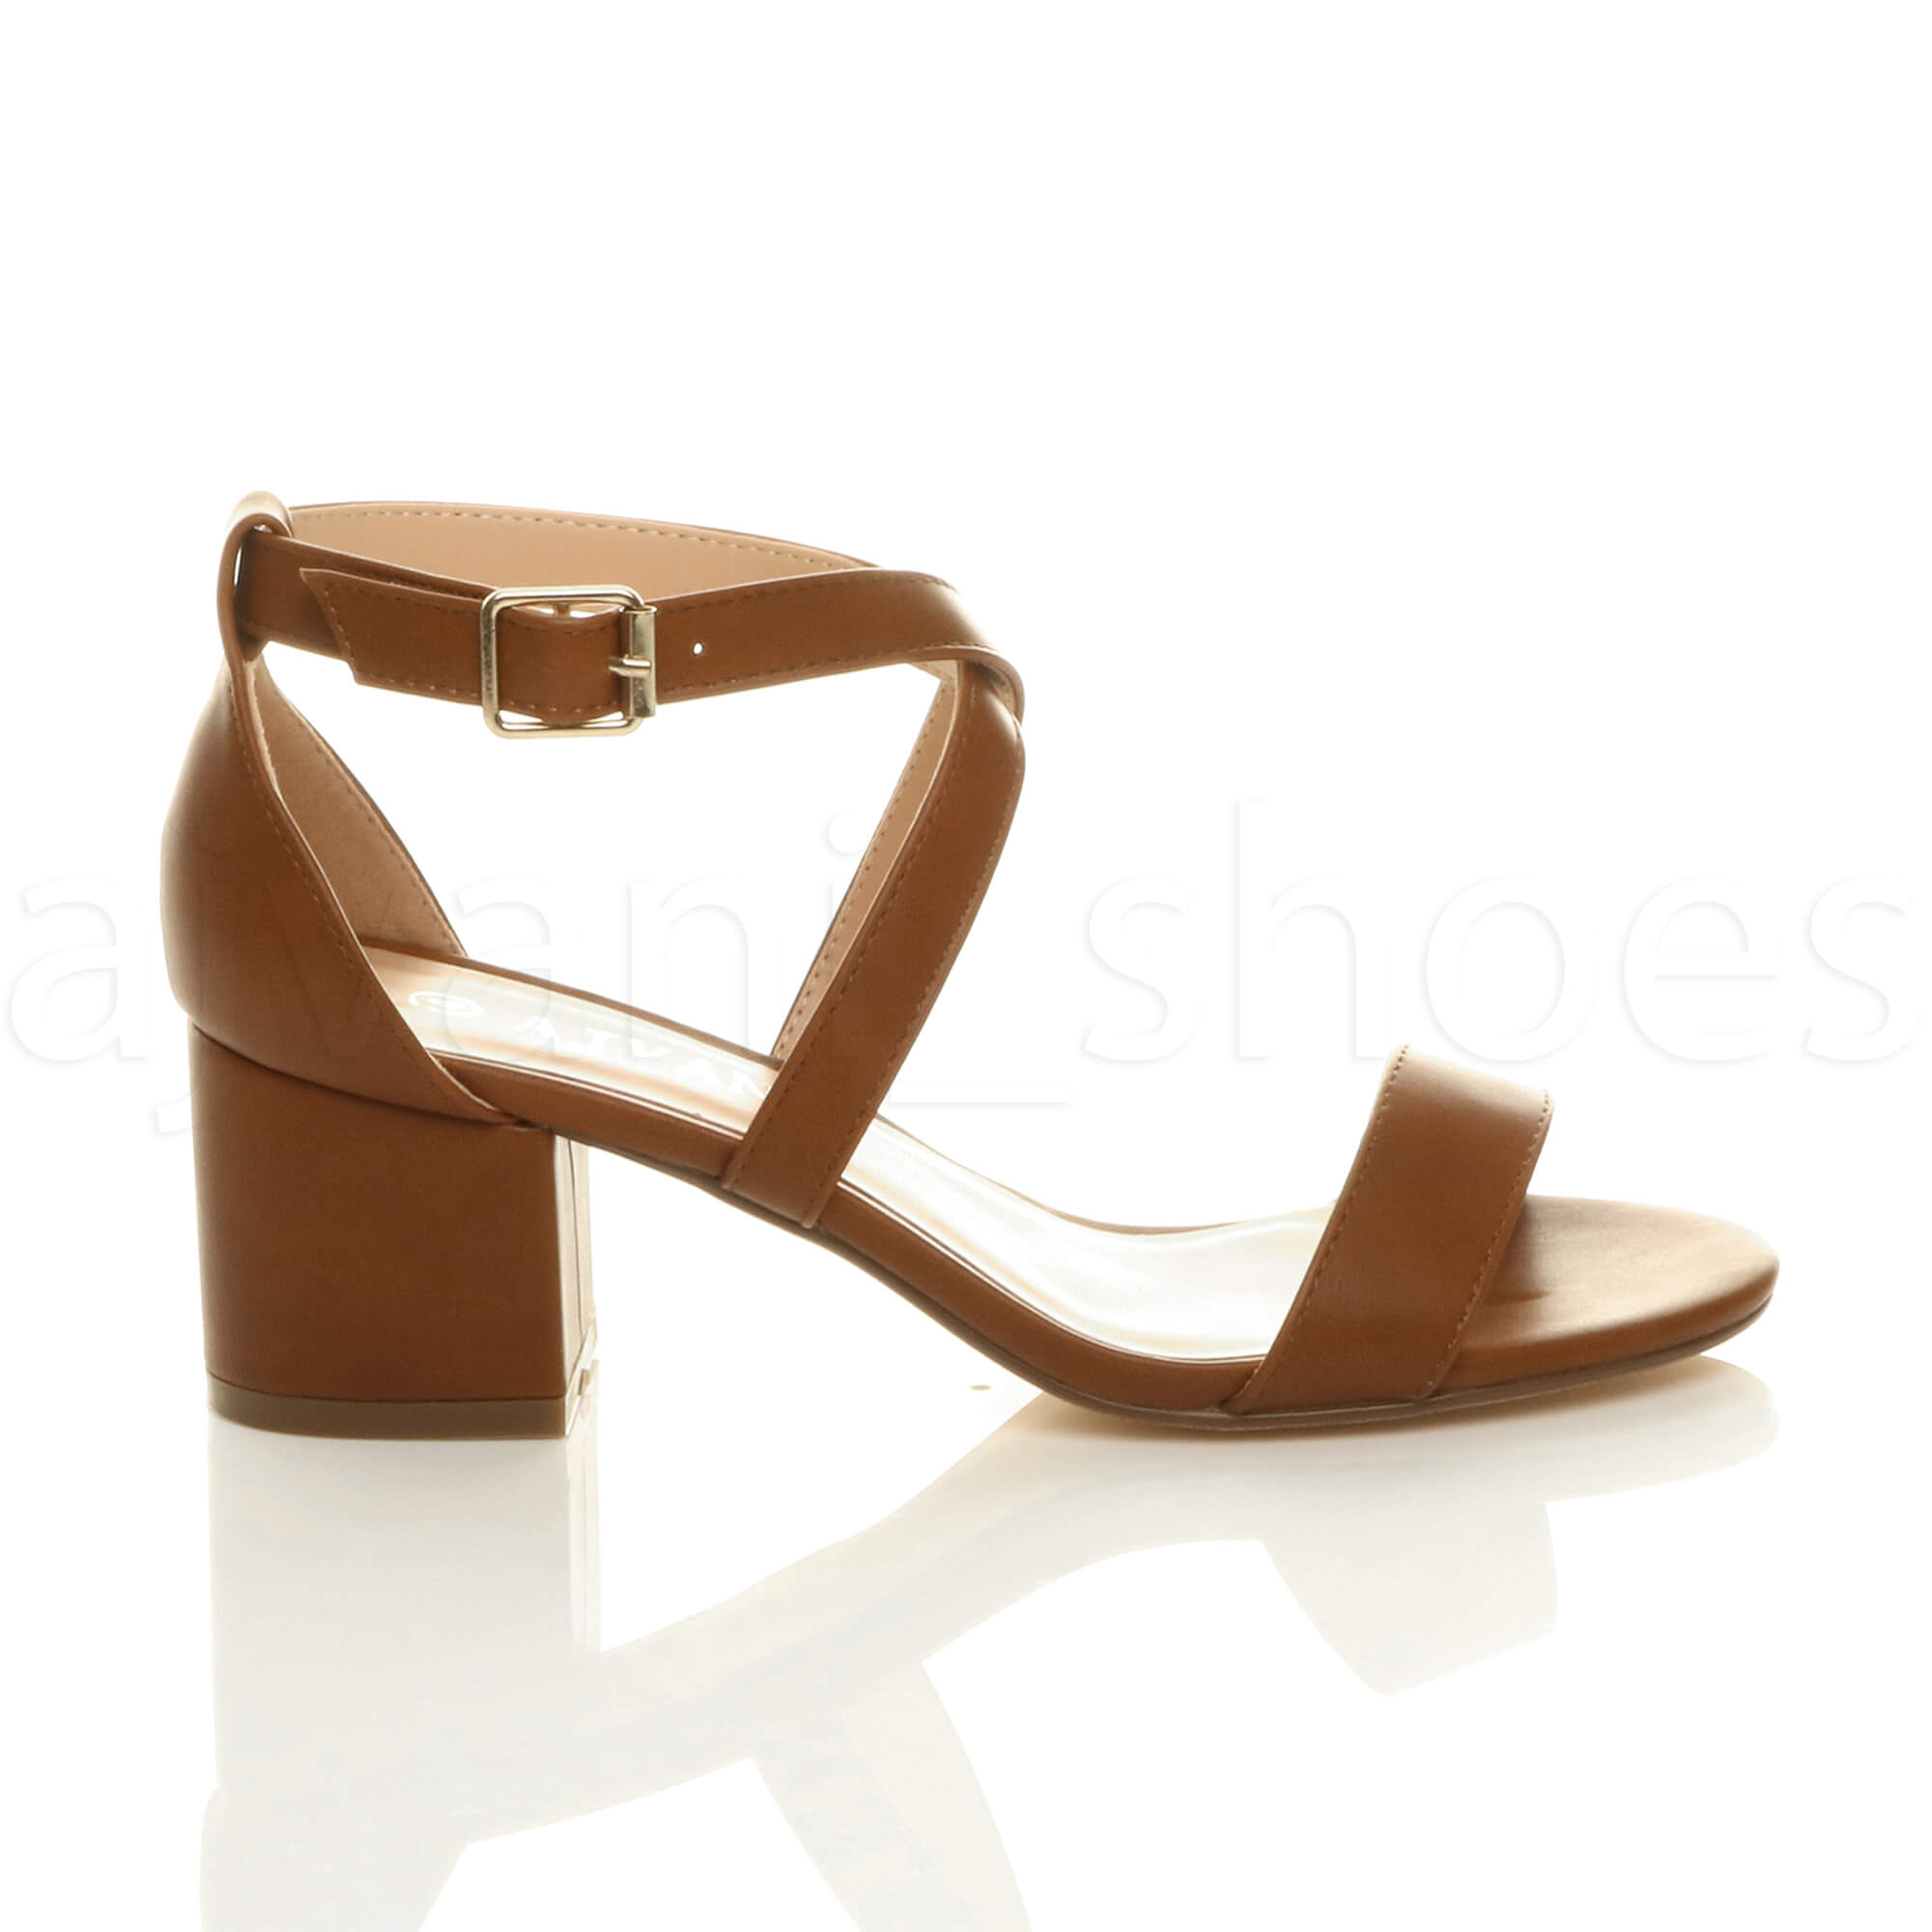 WOMENS-LADIES-MID-LOW-BLOCK-HEEL-CROSS-STRAPS-PARTY-STRAPPY-SANDALS-SHOES-SIZE thumbnail 90